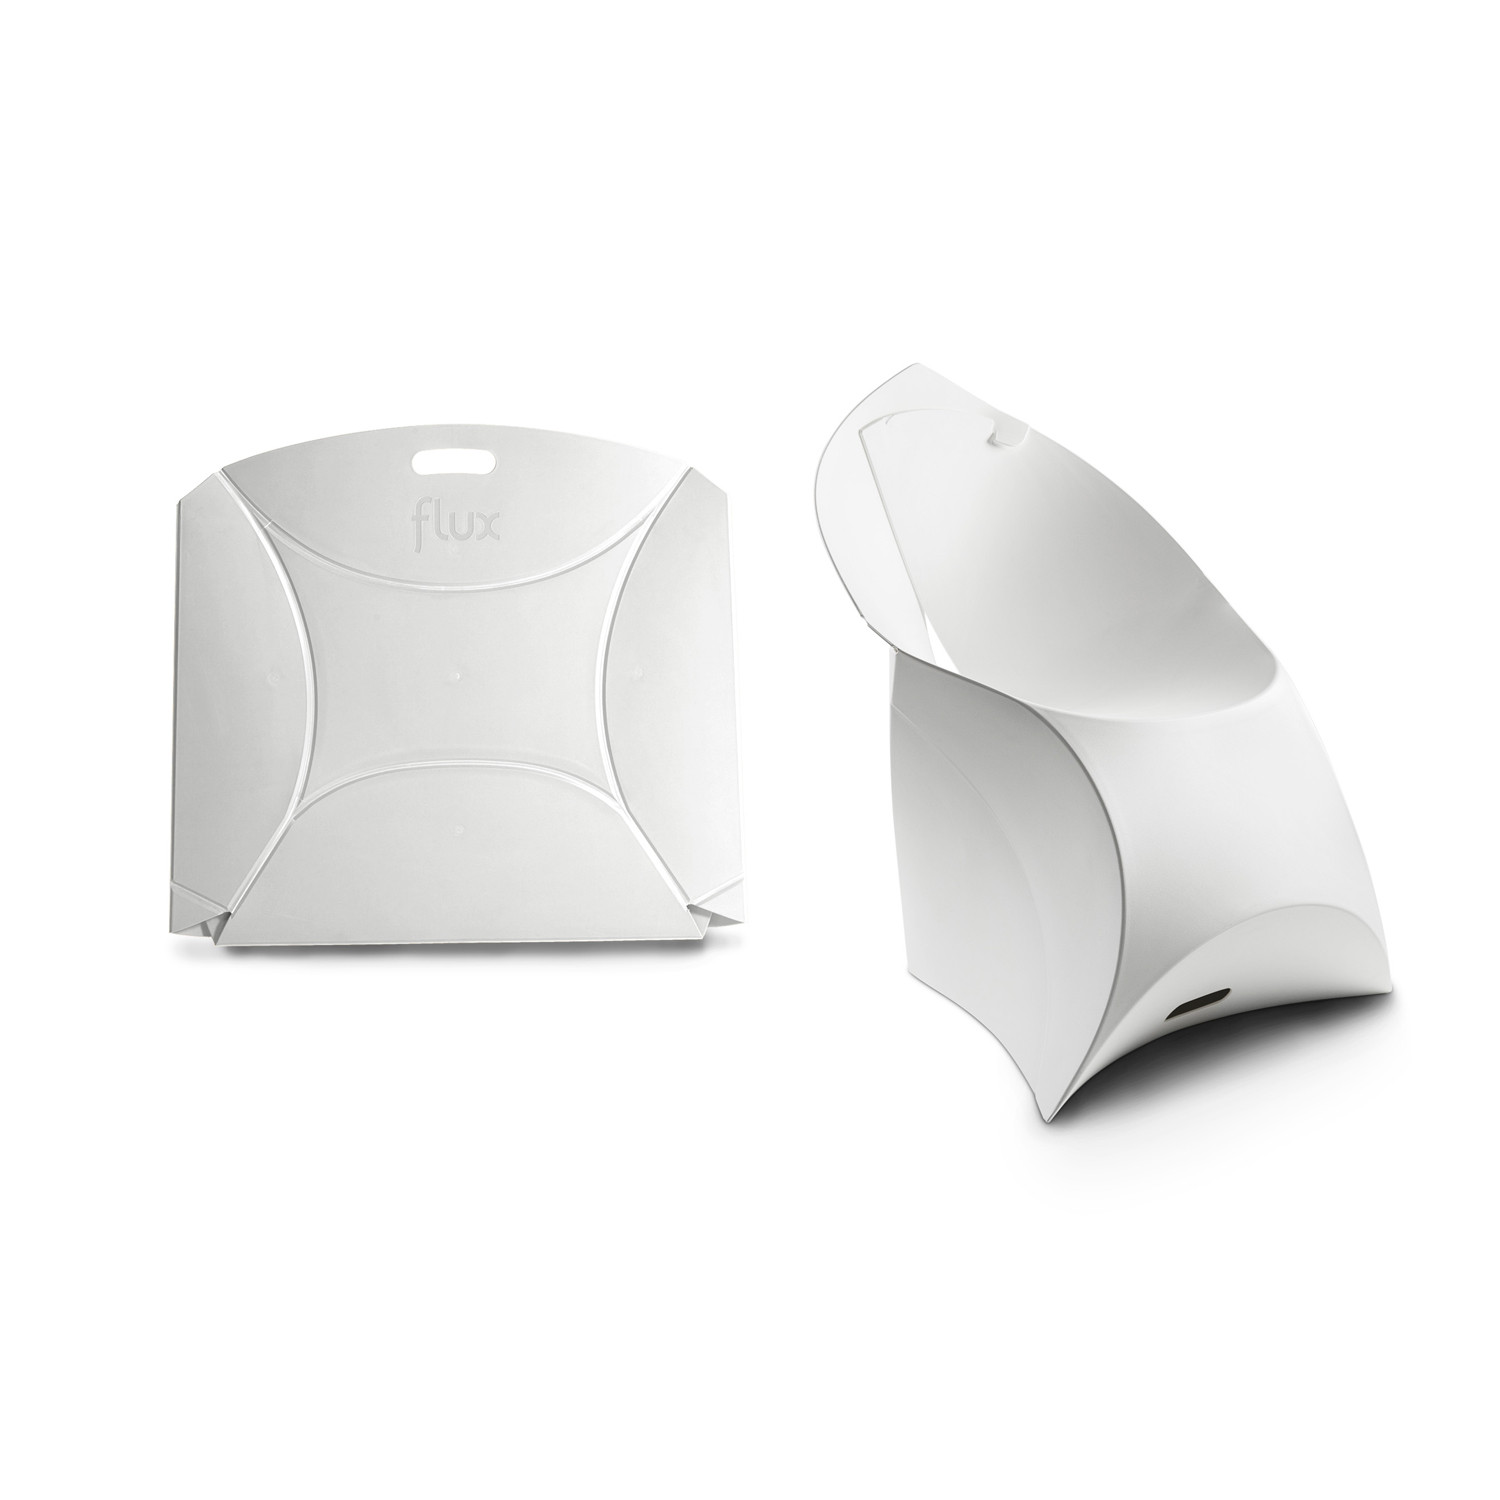 Silla Flux Flux Chair Pure White Flux Touch Of Modern